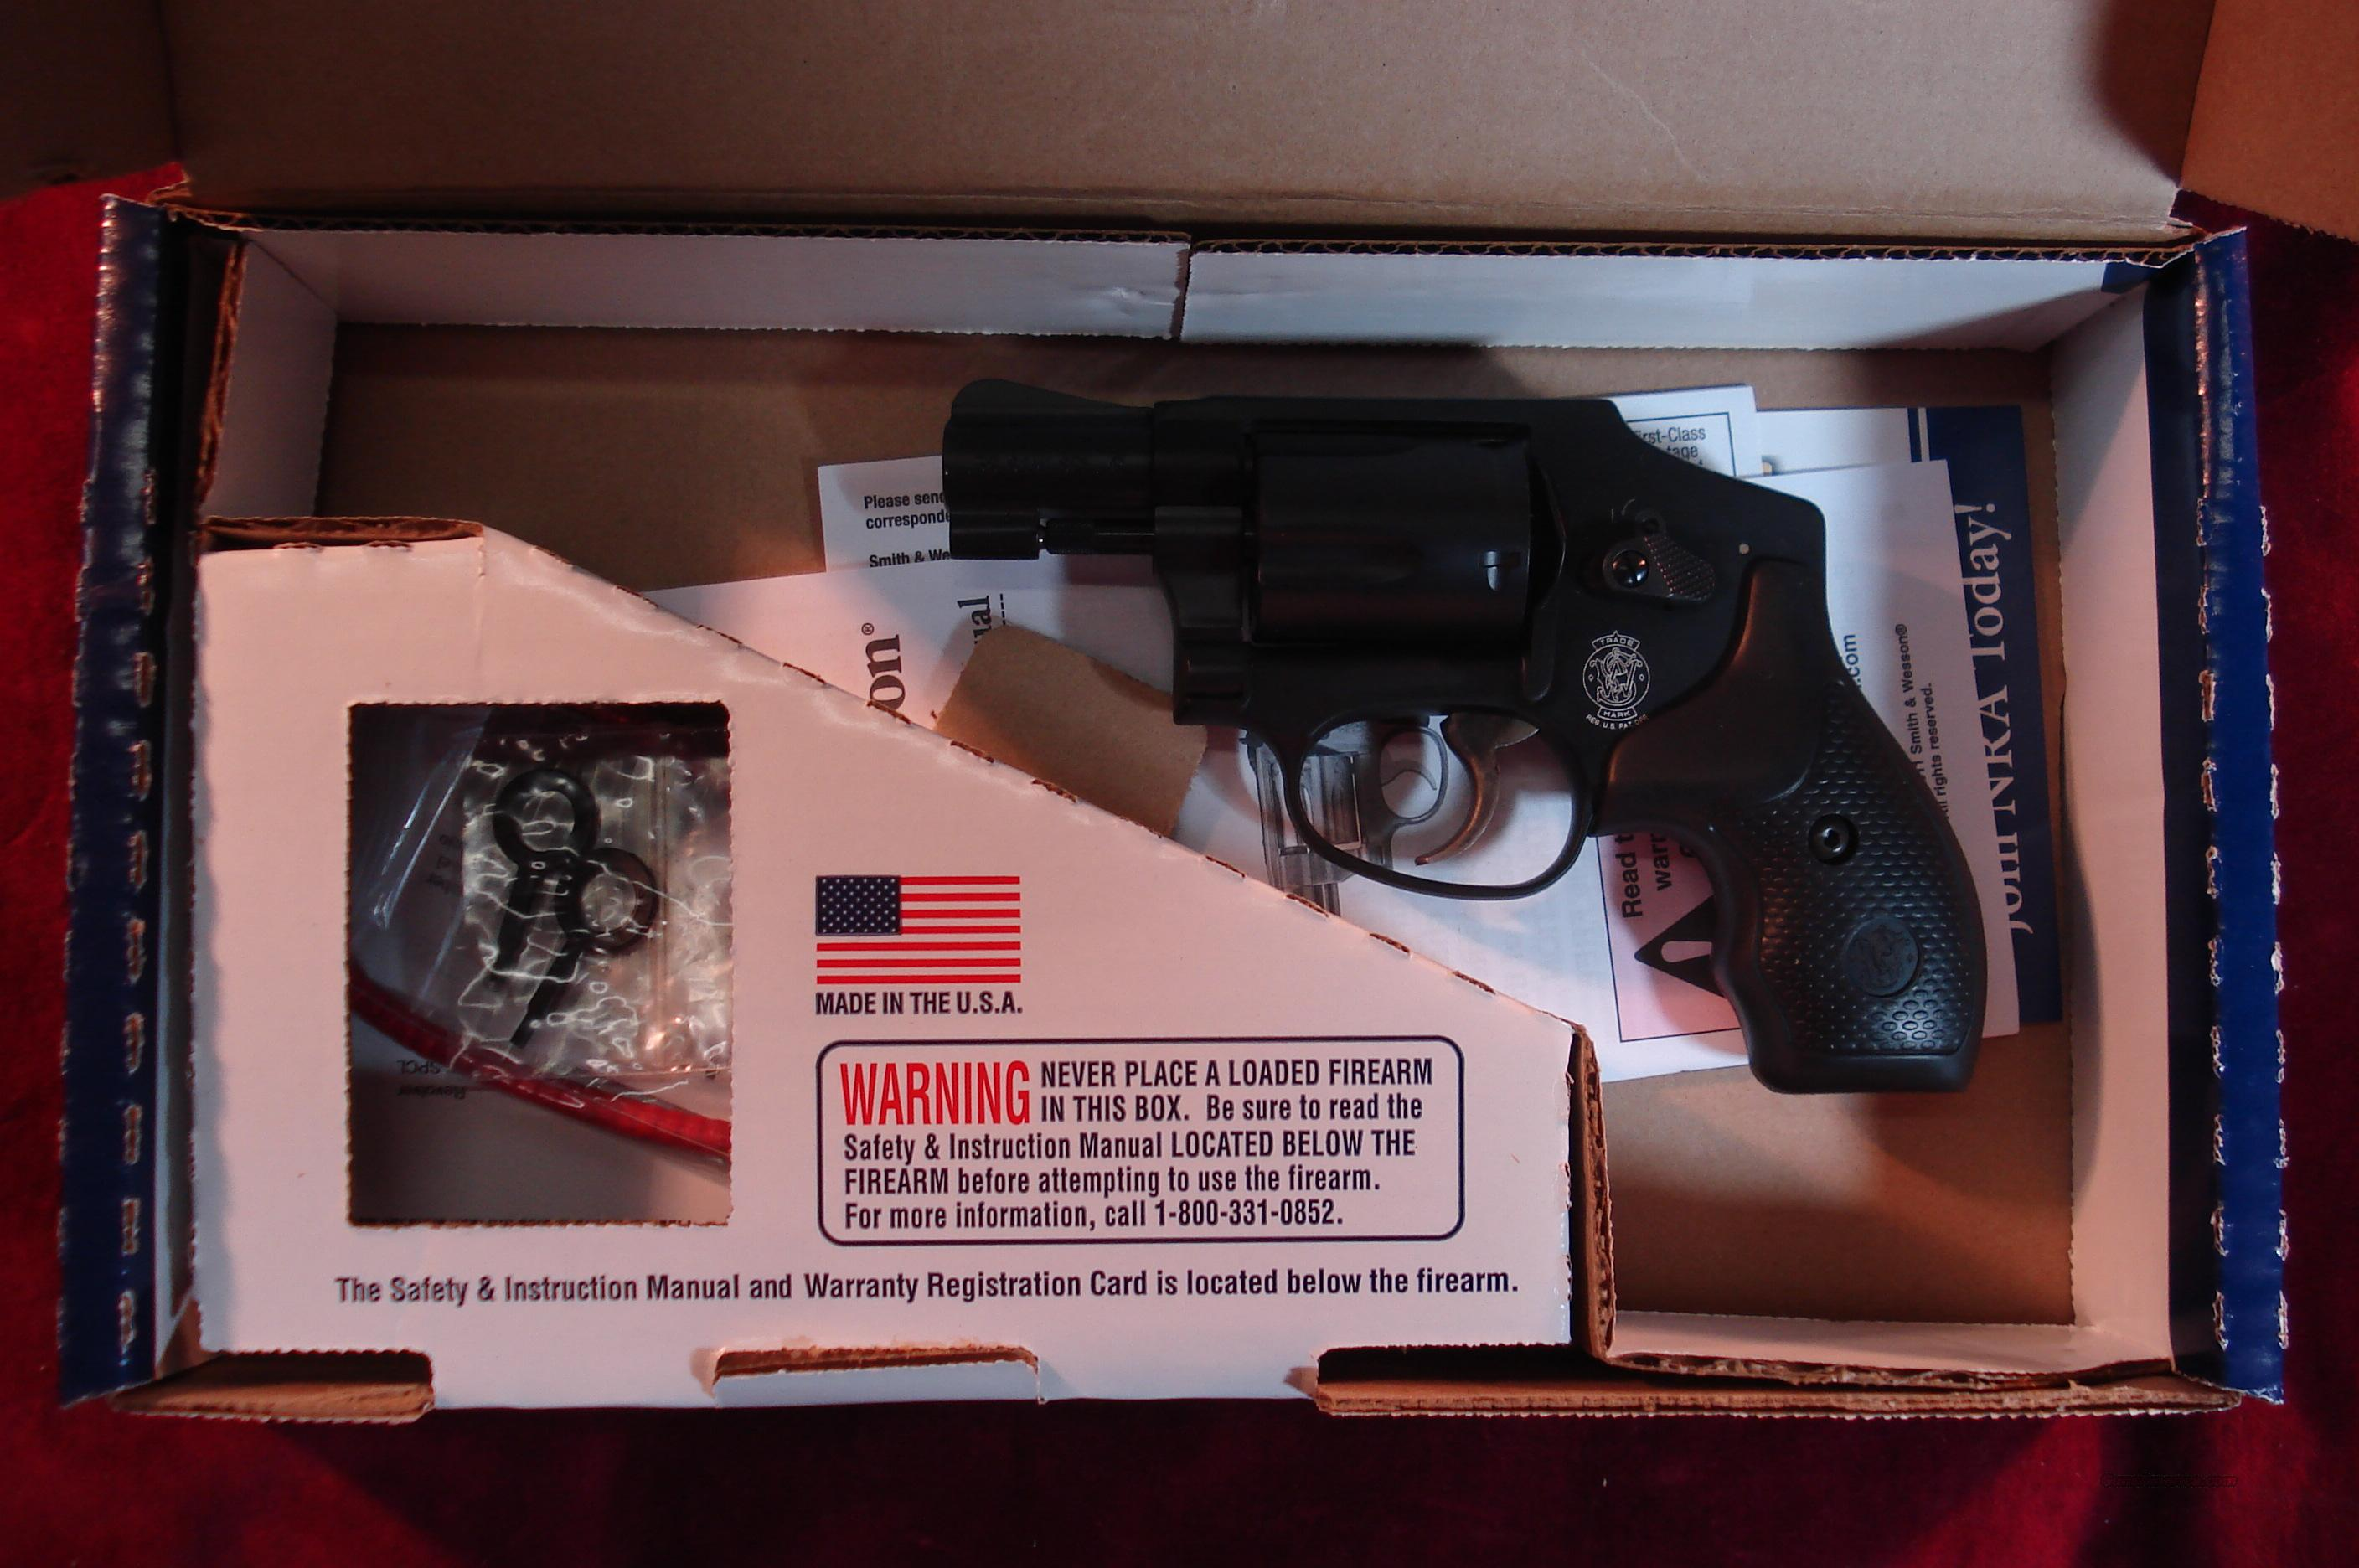 SMITH AND WESSON 442 38 SPECIAL ENCLOSED HAMMER DAO NEW  Guns > Pistols > Smith & Wesson Revolvers > Pocket Pistols